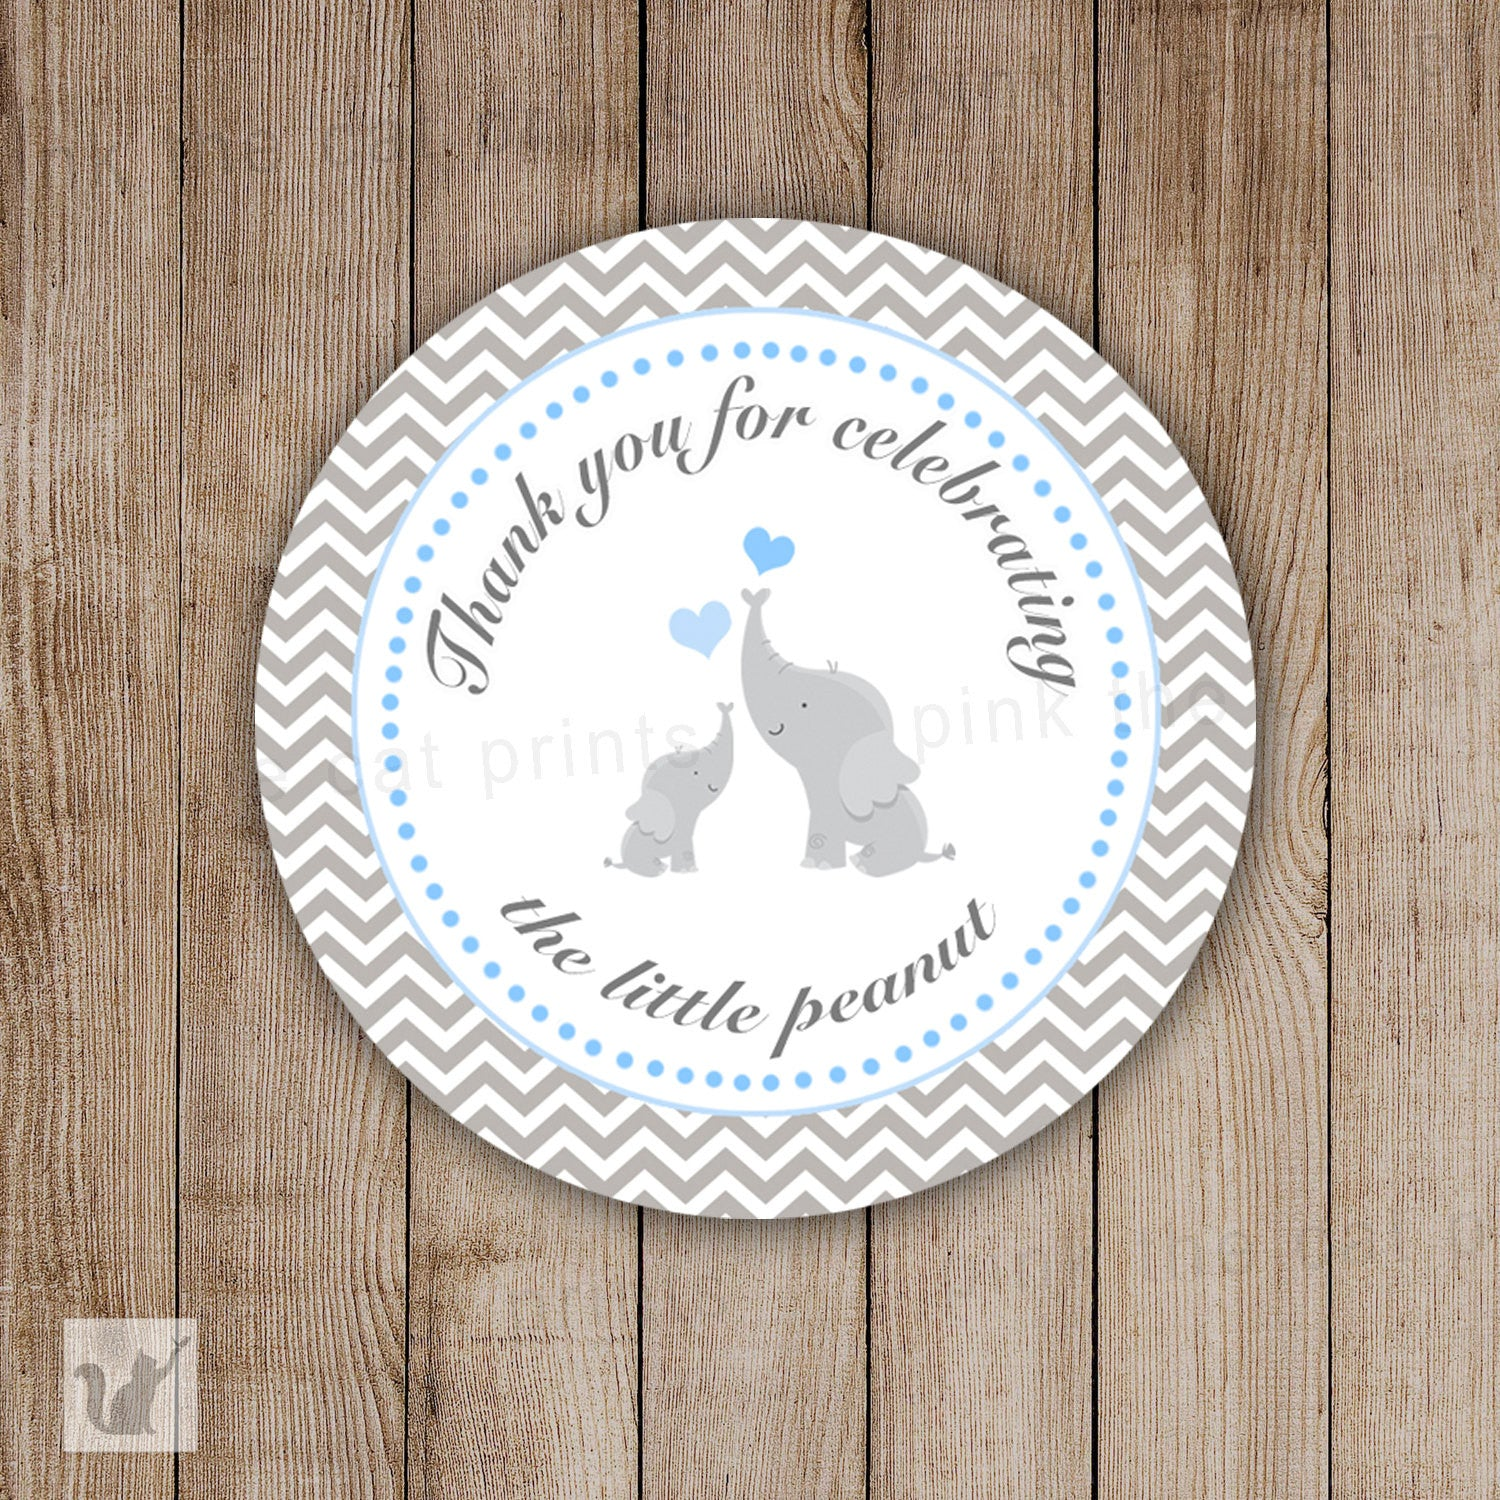 INSTANT DOWNLOAD Grey Chevron Elephant Baby Shower Thank You Tag Labels    Polka Dots Party Favors Baby Shower Favors Baby Shower Tags